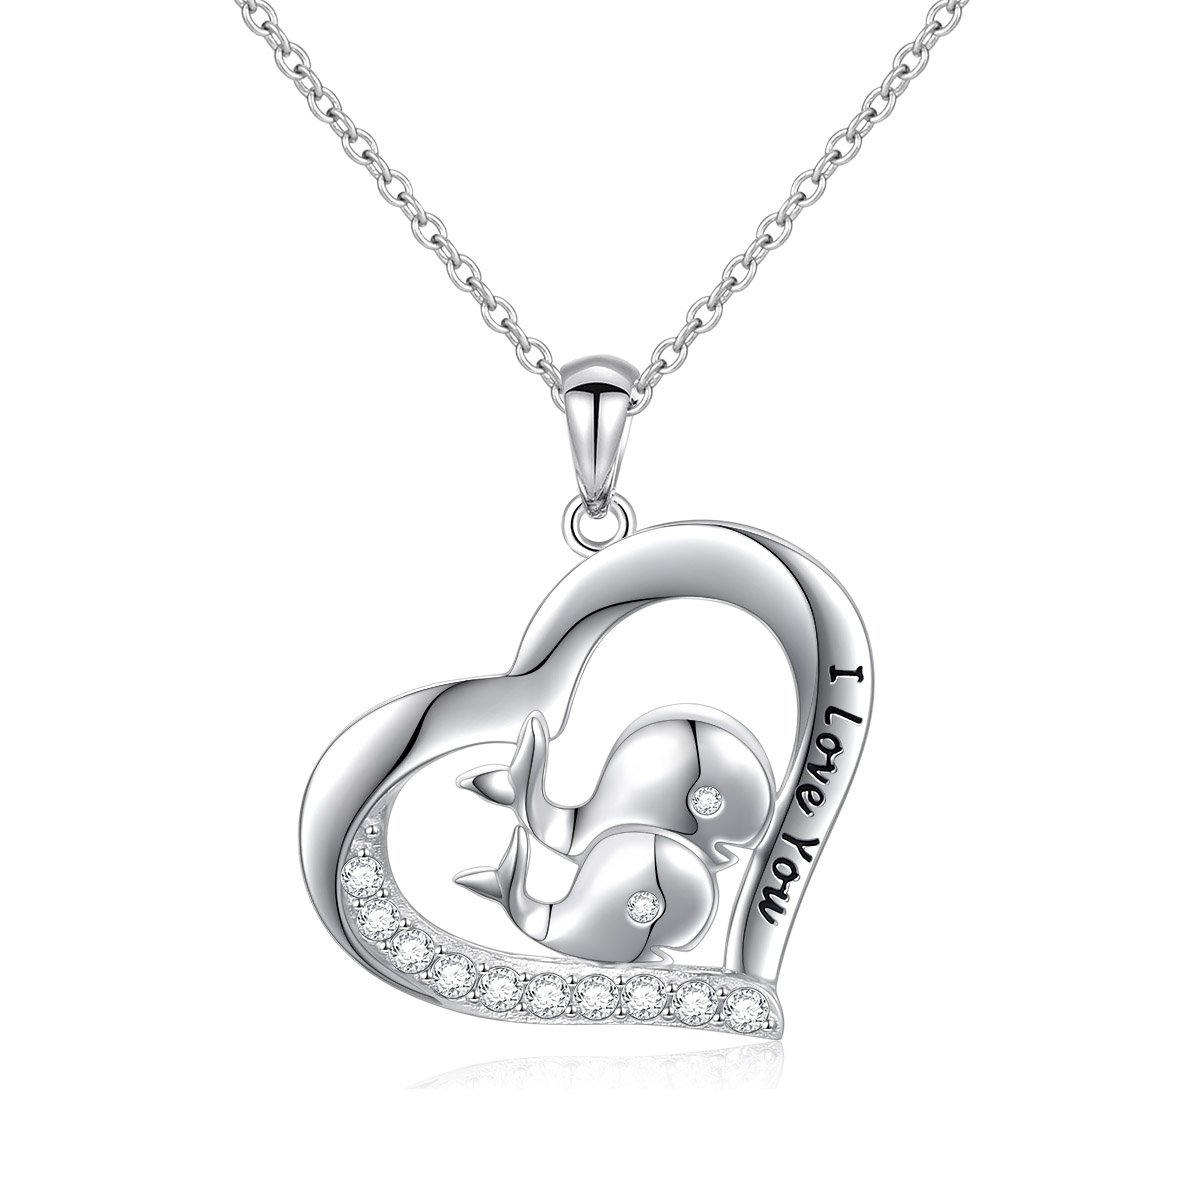 DAOCHONG S925 Sterling Silver I Love You Mother And Child Whale Pendant Necklace 18'' by DAOCHONG (Image #1)